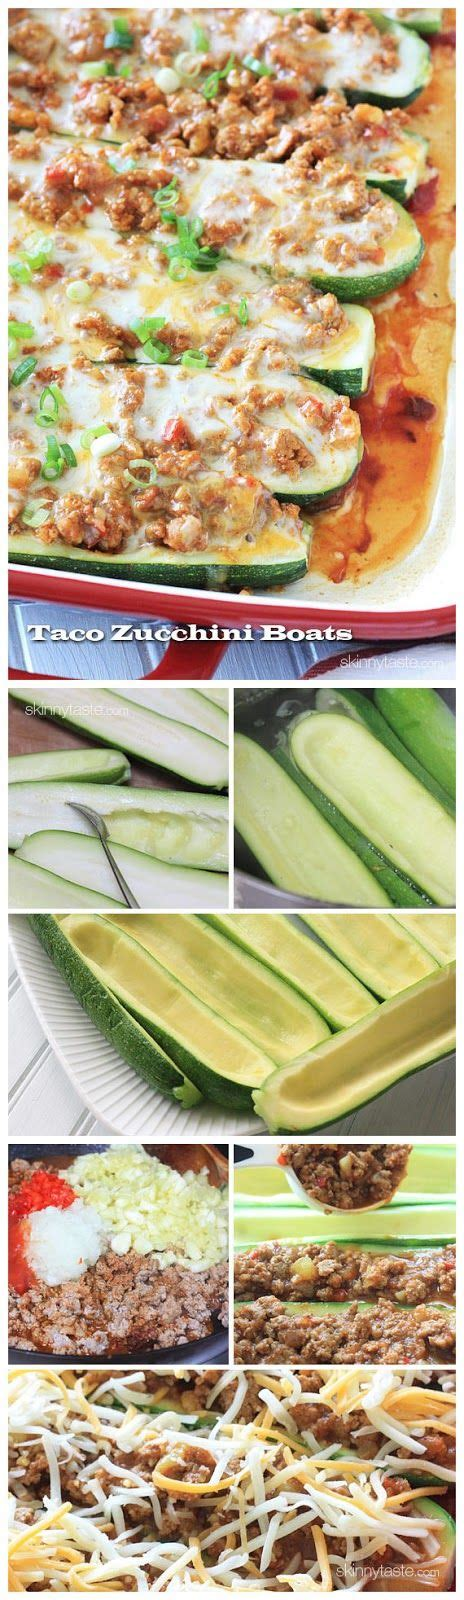 Taco Courgette Boats by Taco Stuffed Zucchini Boats The Cheese Taco Stuffed